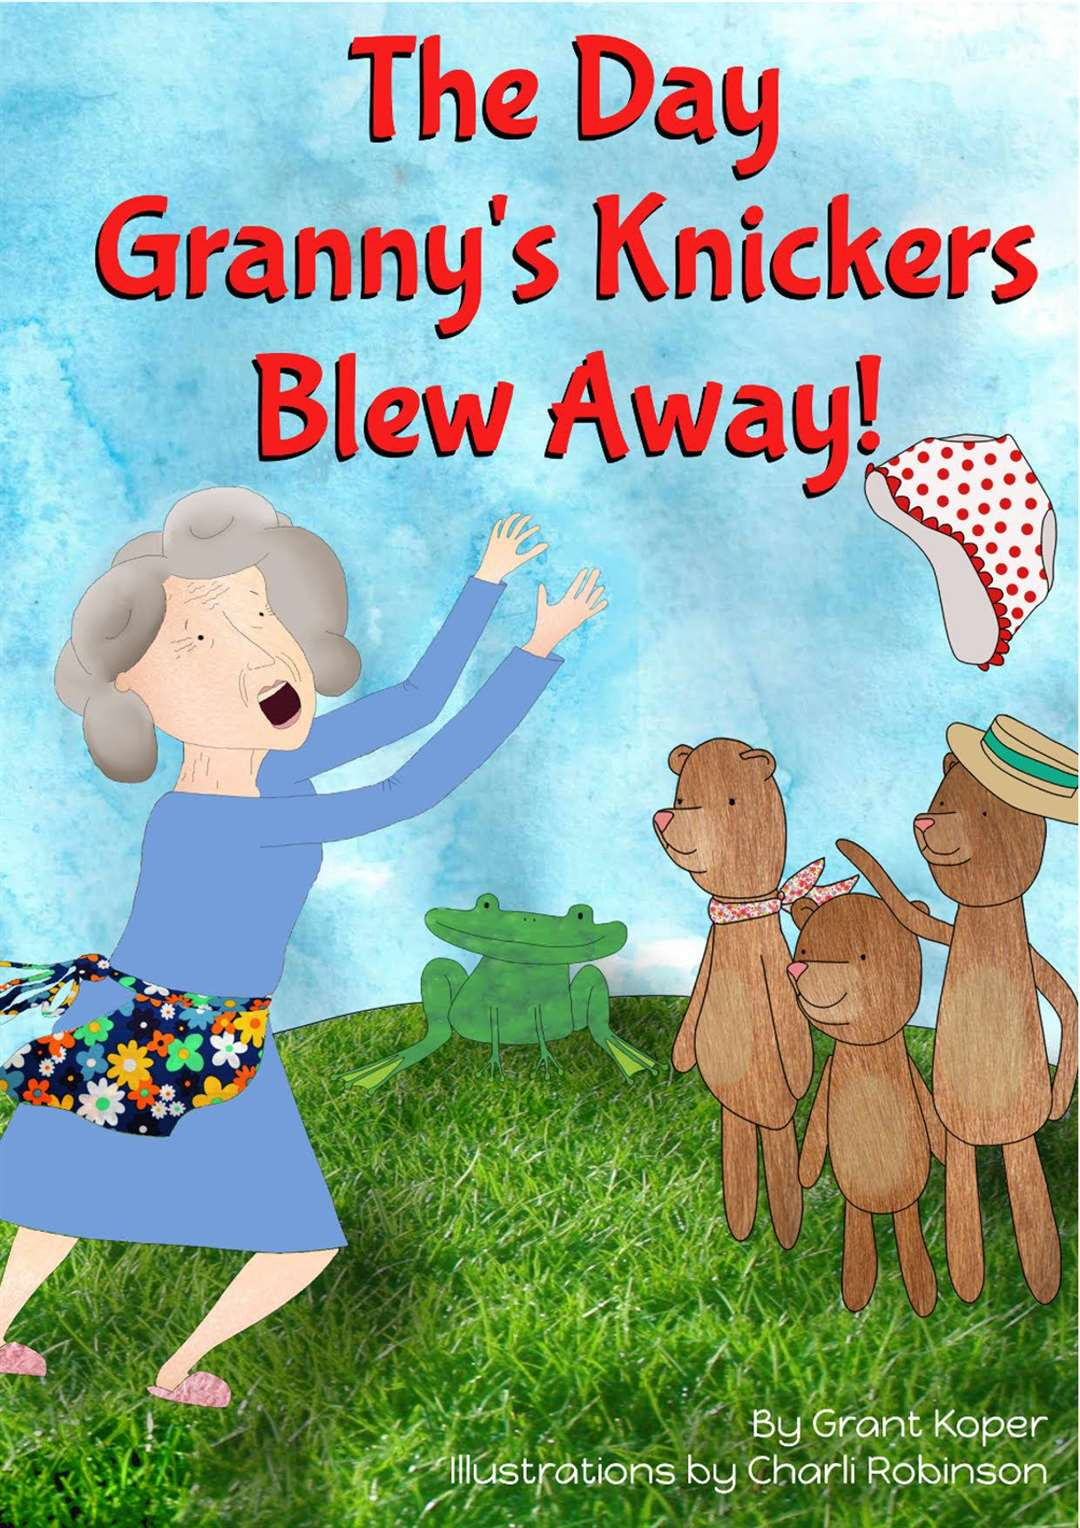 The Day Granny's Knickers Blew Away (2564672)